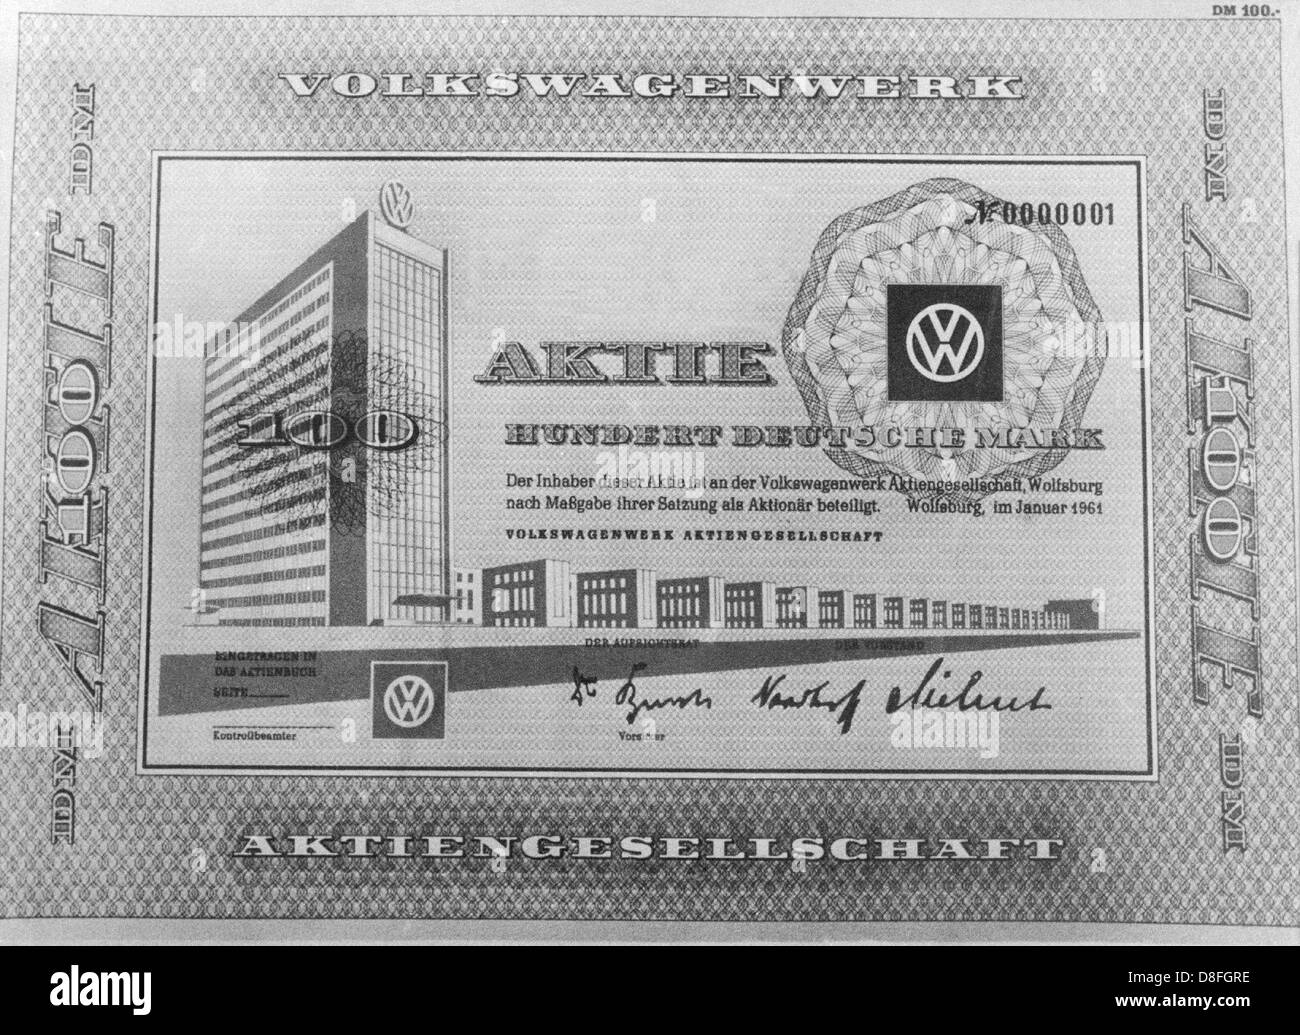 Picture of a VW people's stock worth one hundred mark from 1961. Stock Photo